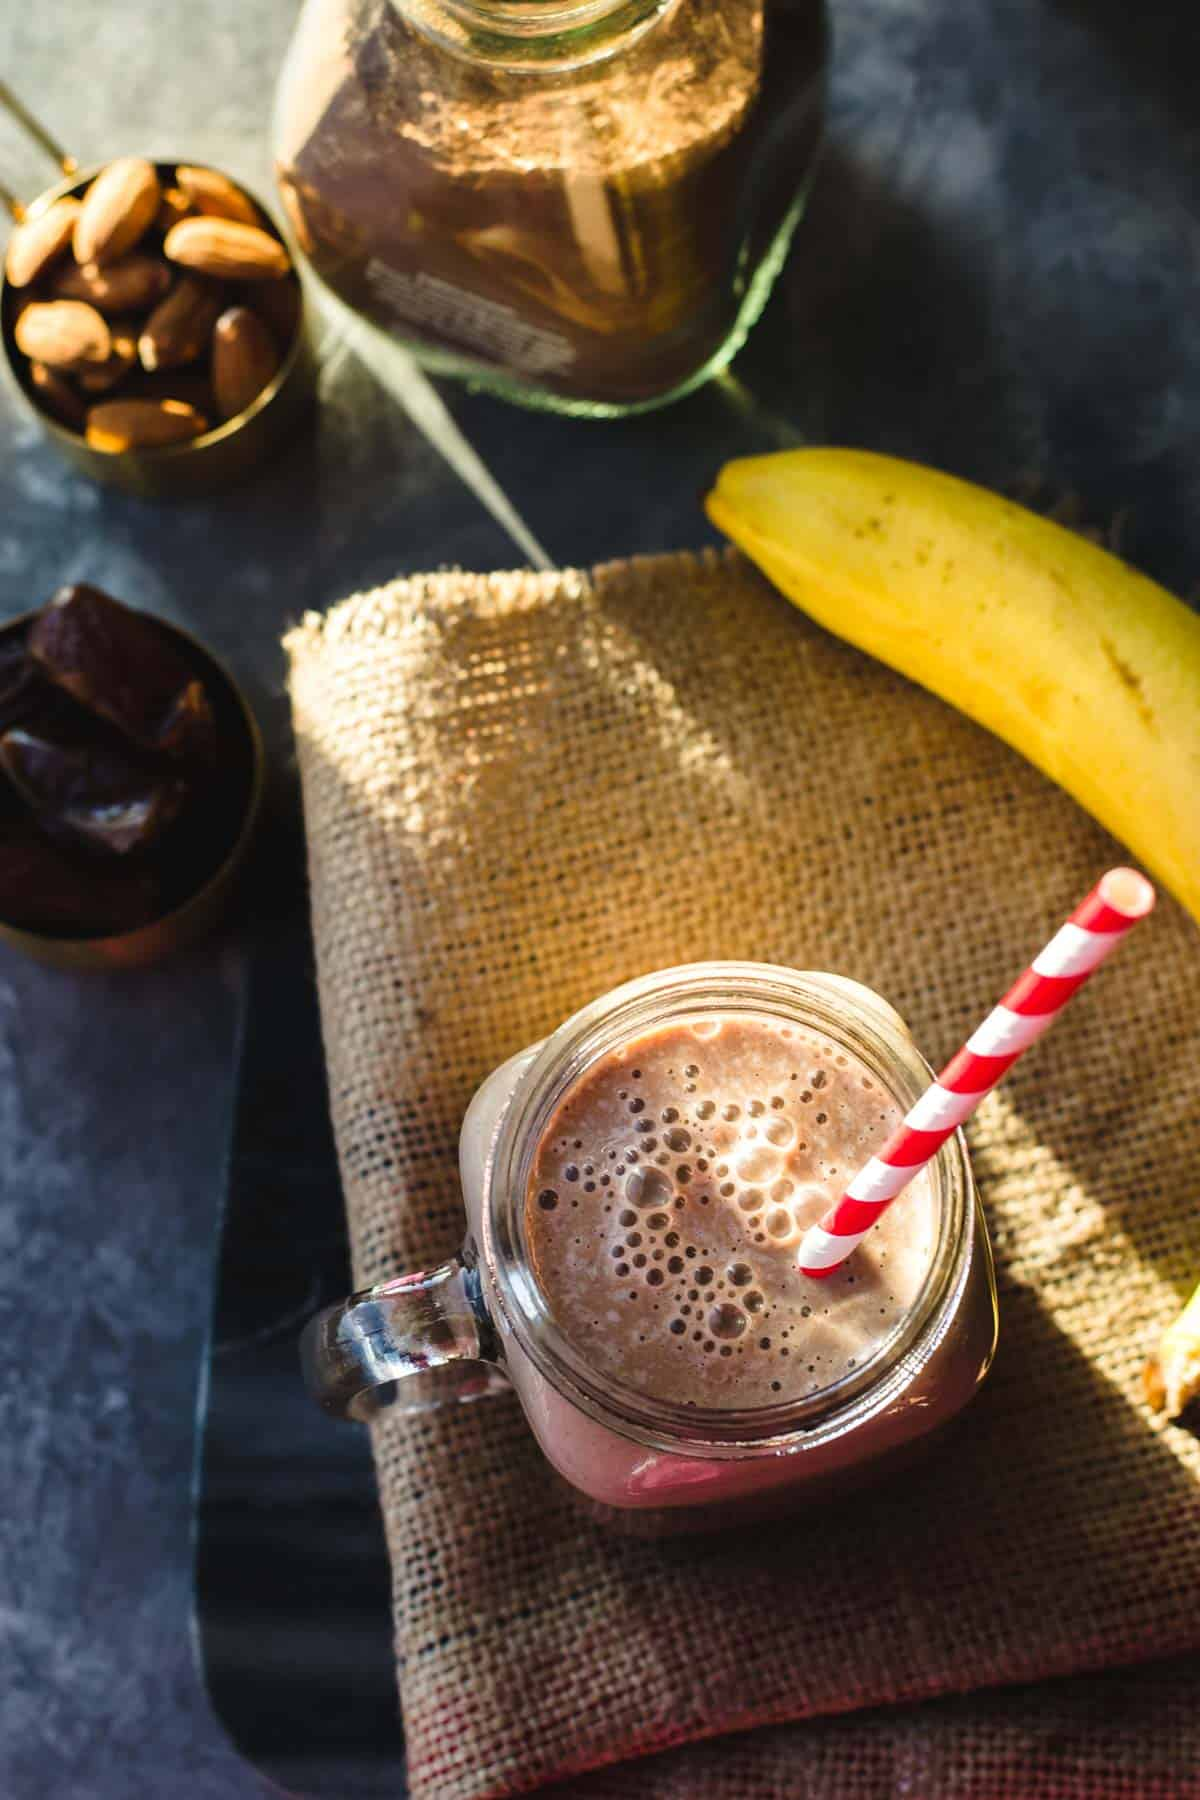 Chocolate almond smoothie served with a red and with straw. There is also a cocoa mix bottle along with almonds, dates and bananas in this picture.